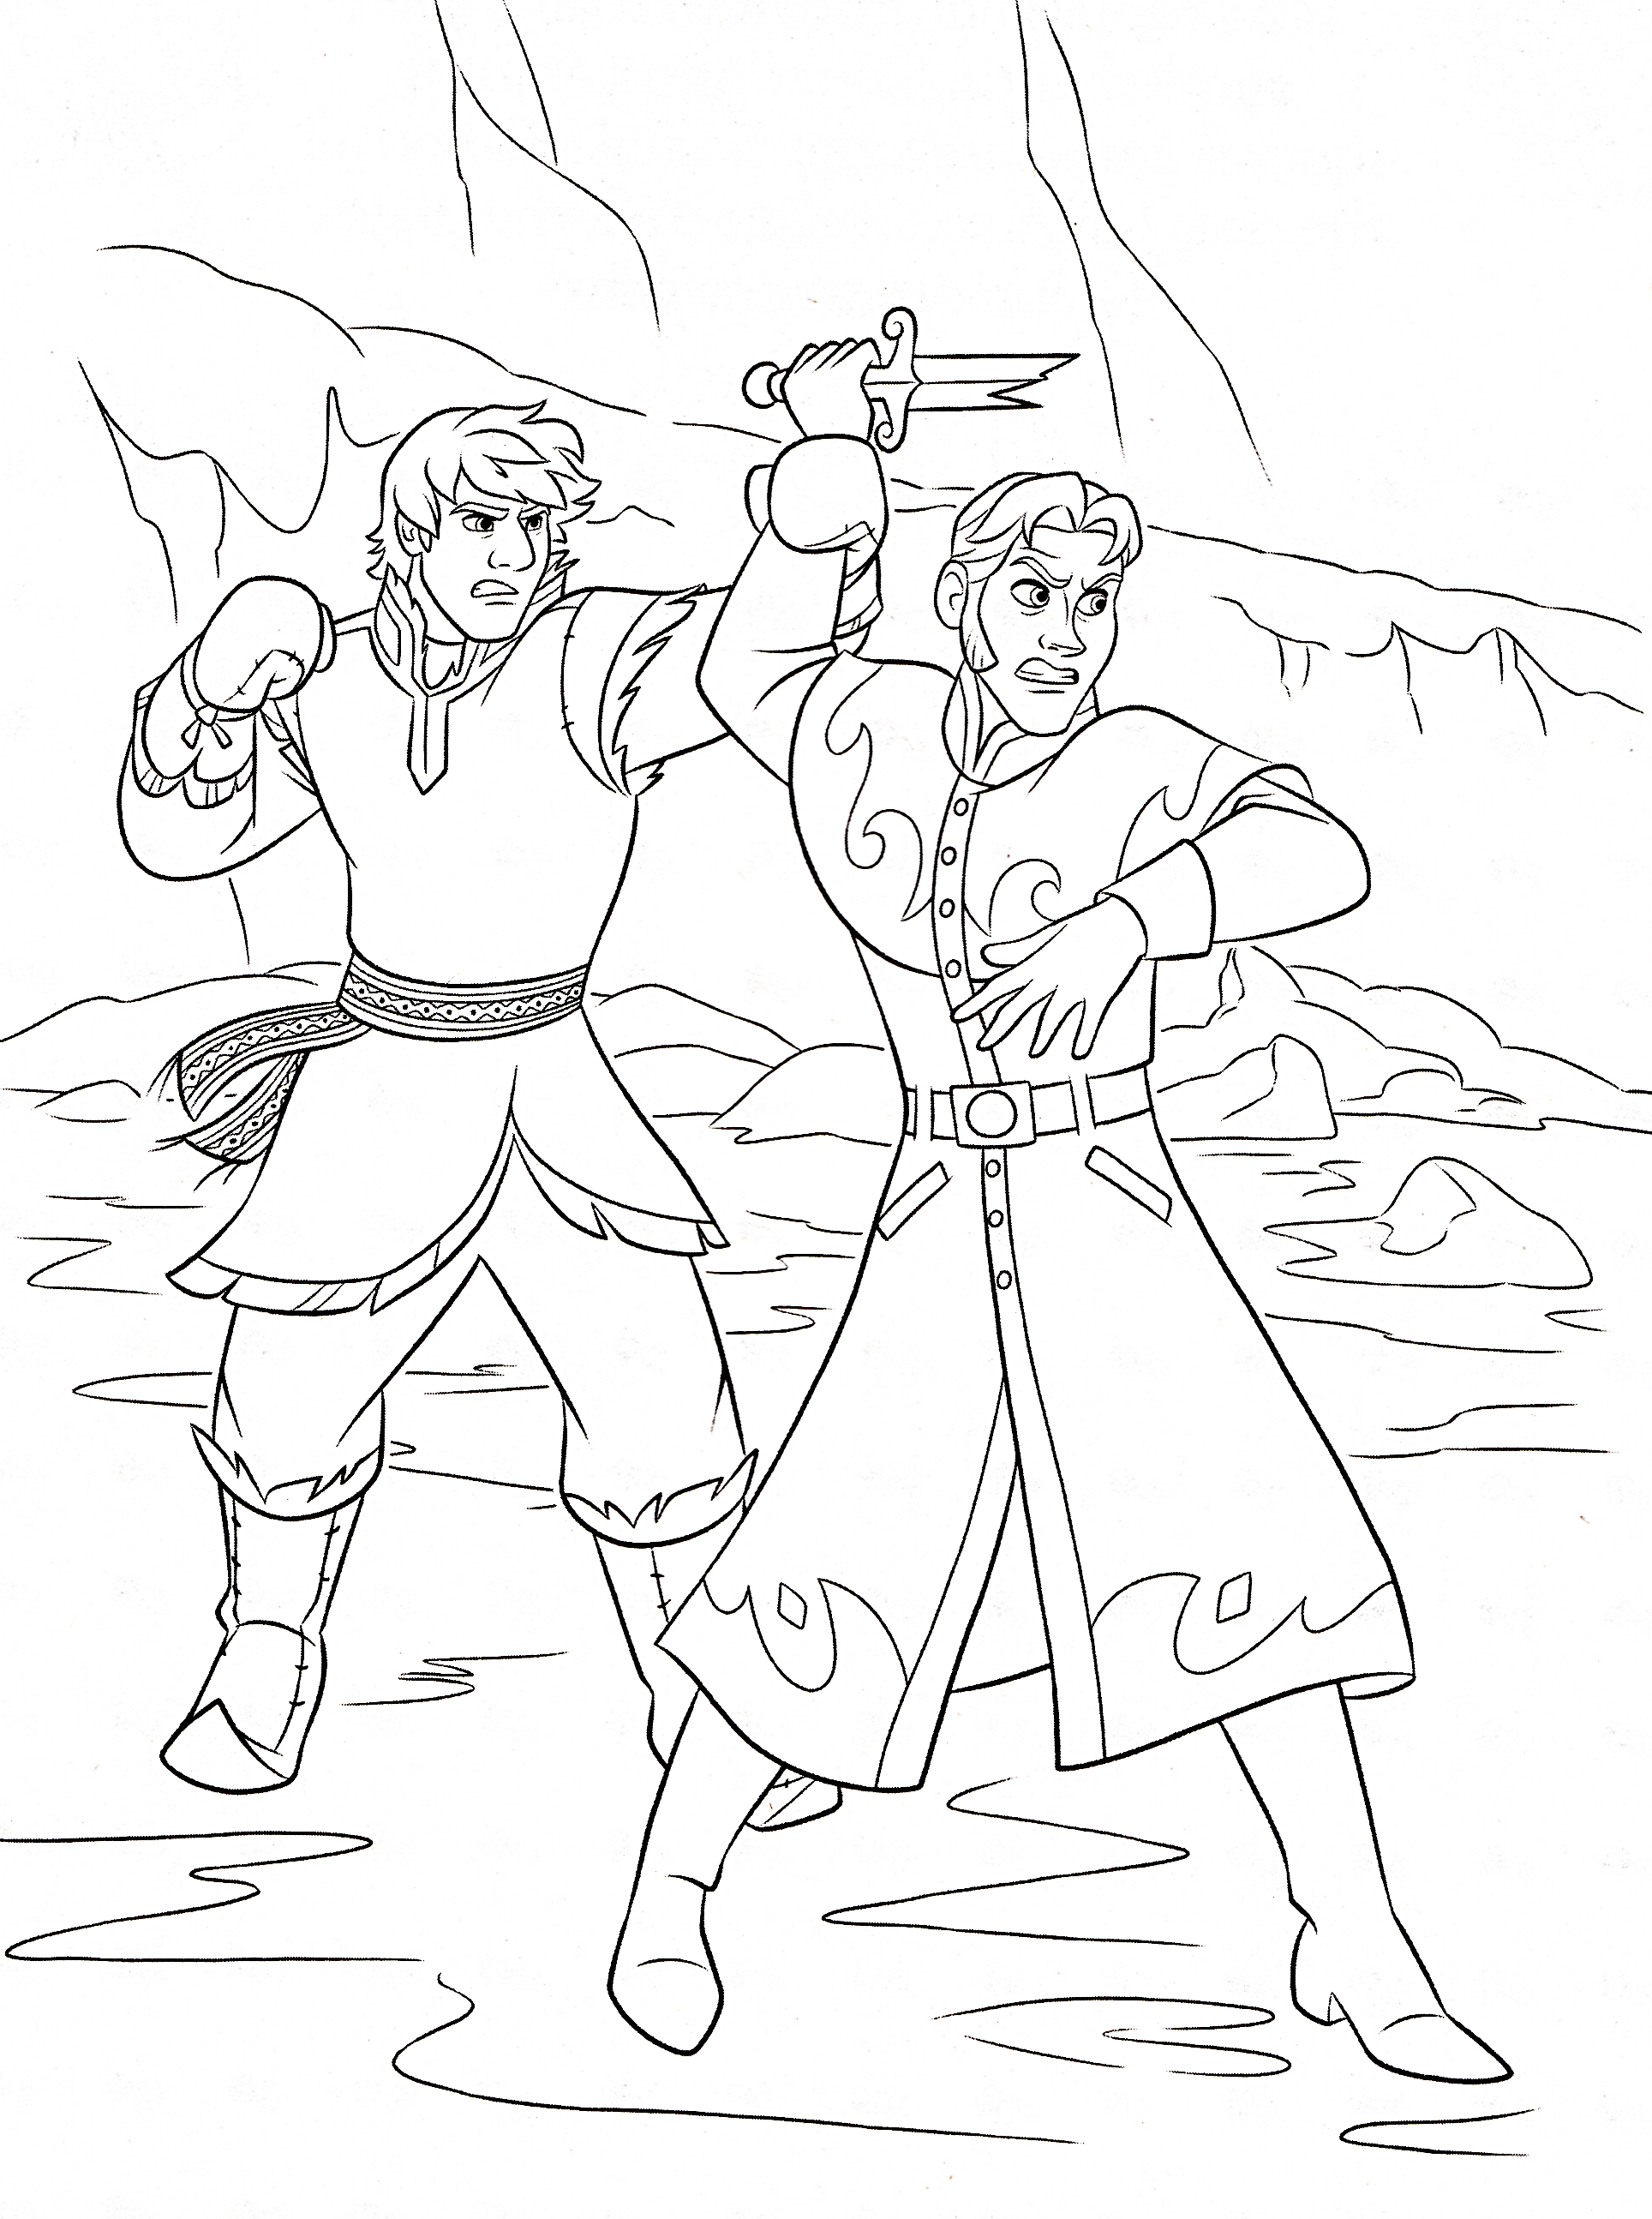 Disney's Frozen Colouring Pages | Cute Kawaii Resources